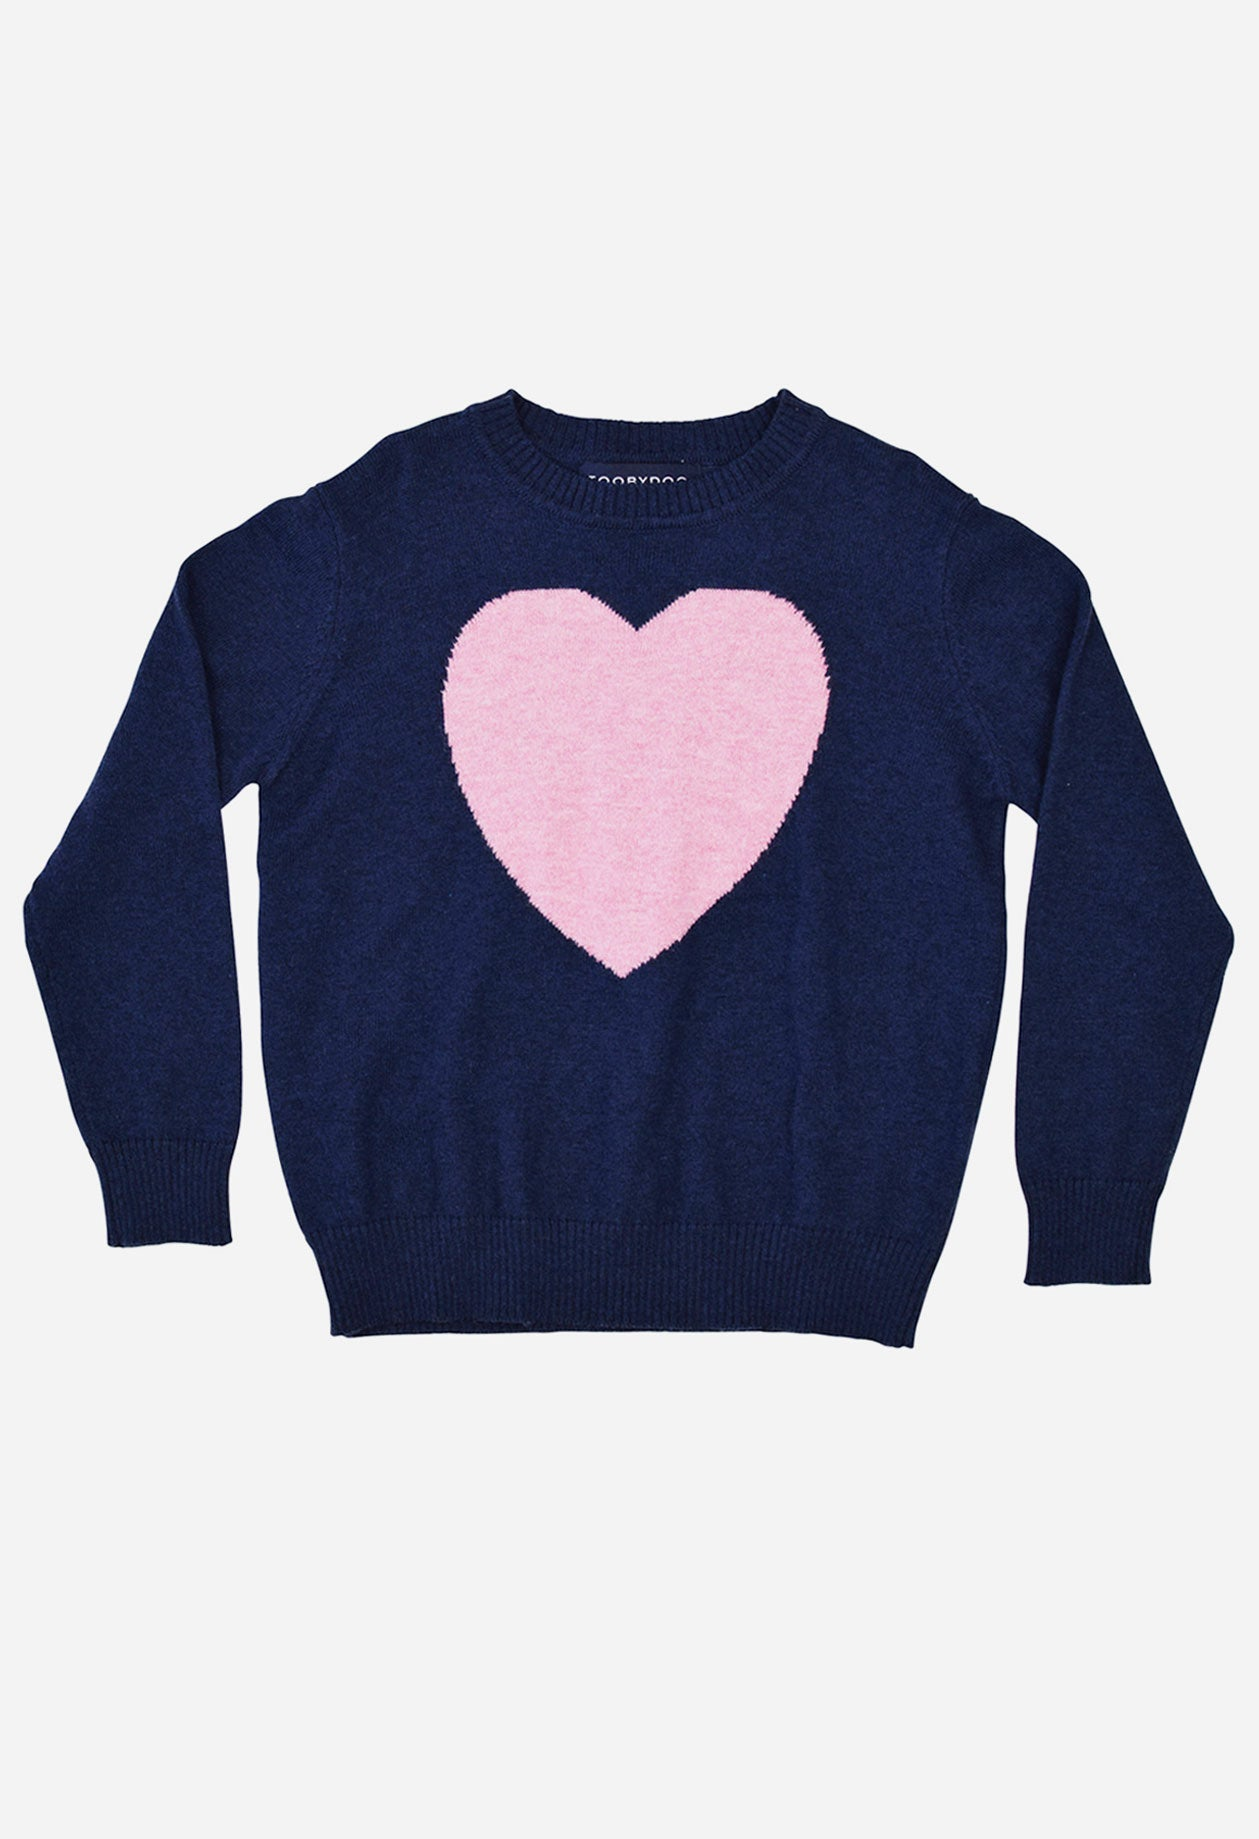 Toobydoo Pink Heart Sweater